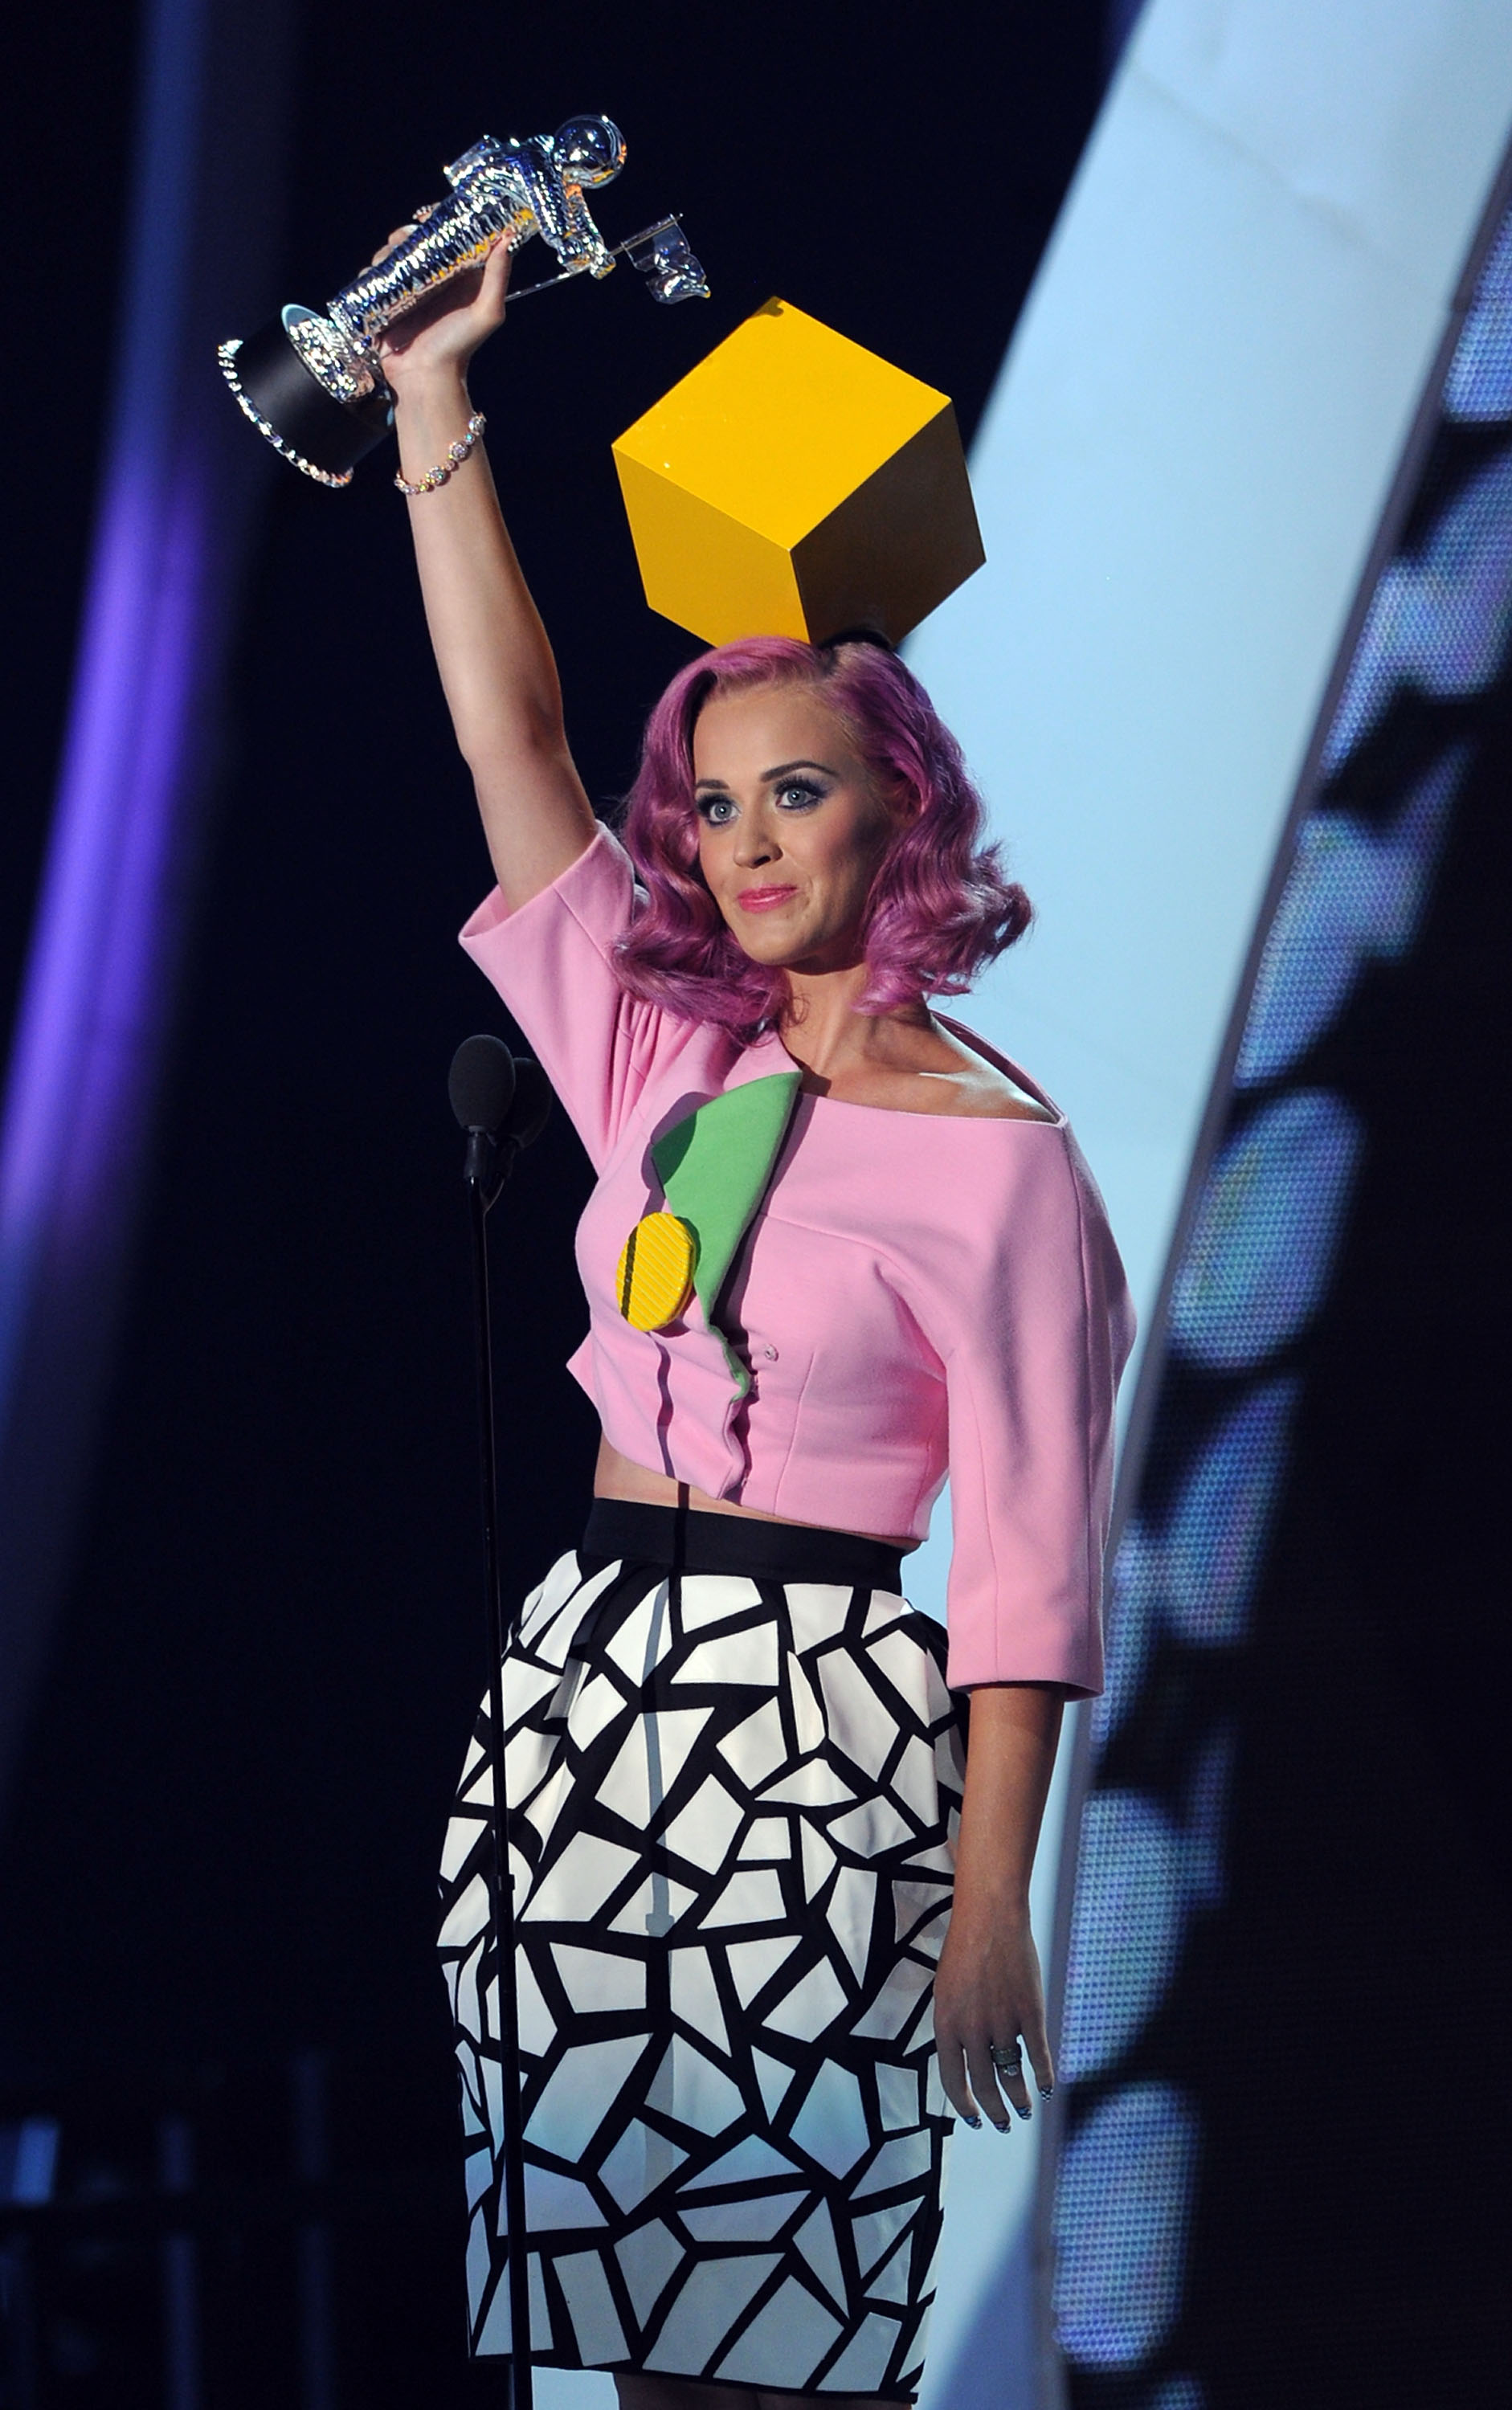 LOS ANGELES, CA - AUGUST 28:  Singer Katy Perry accepts the Video Of The Year award onstage during the 2011 MTV Video Music Awards at Nokia Theatre L.A. LIVE on August 28, 2011 in Los Angeles, California.  (Photo by Kevin Winter/Getty Images)